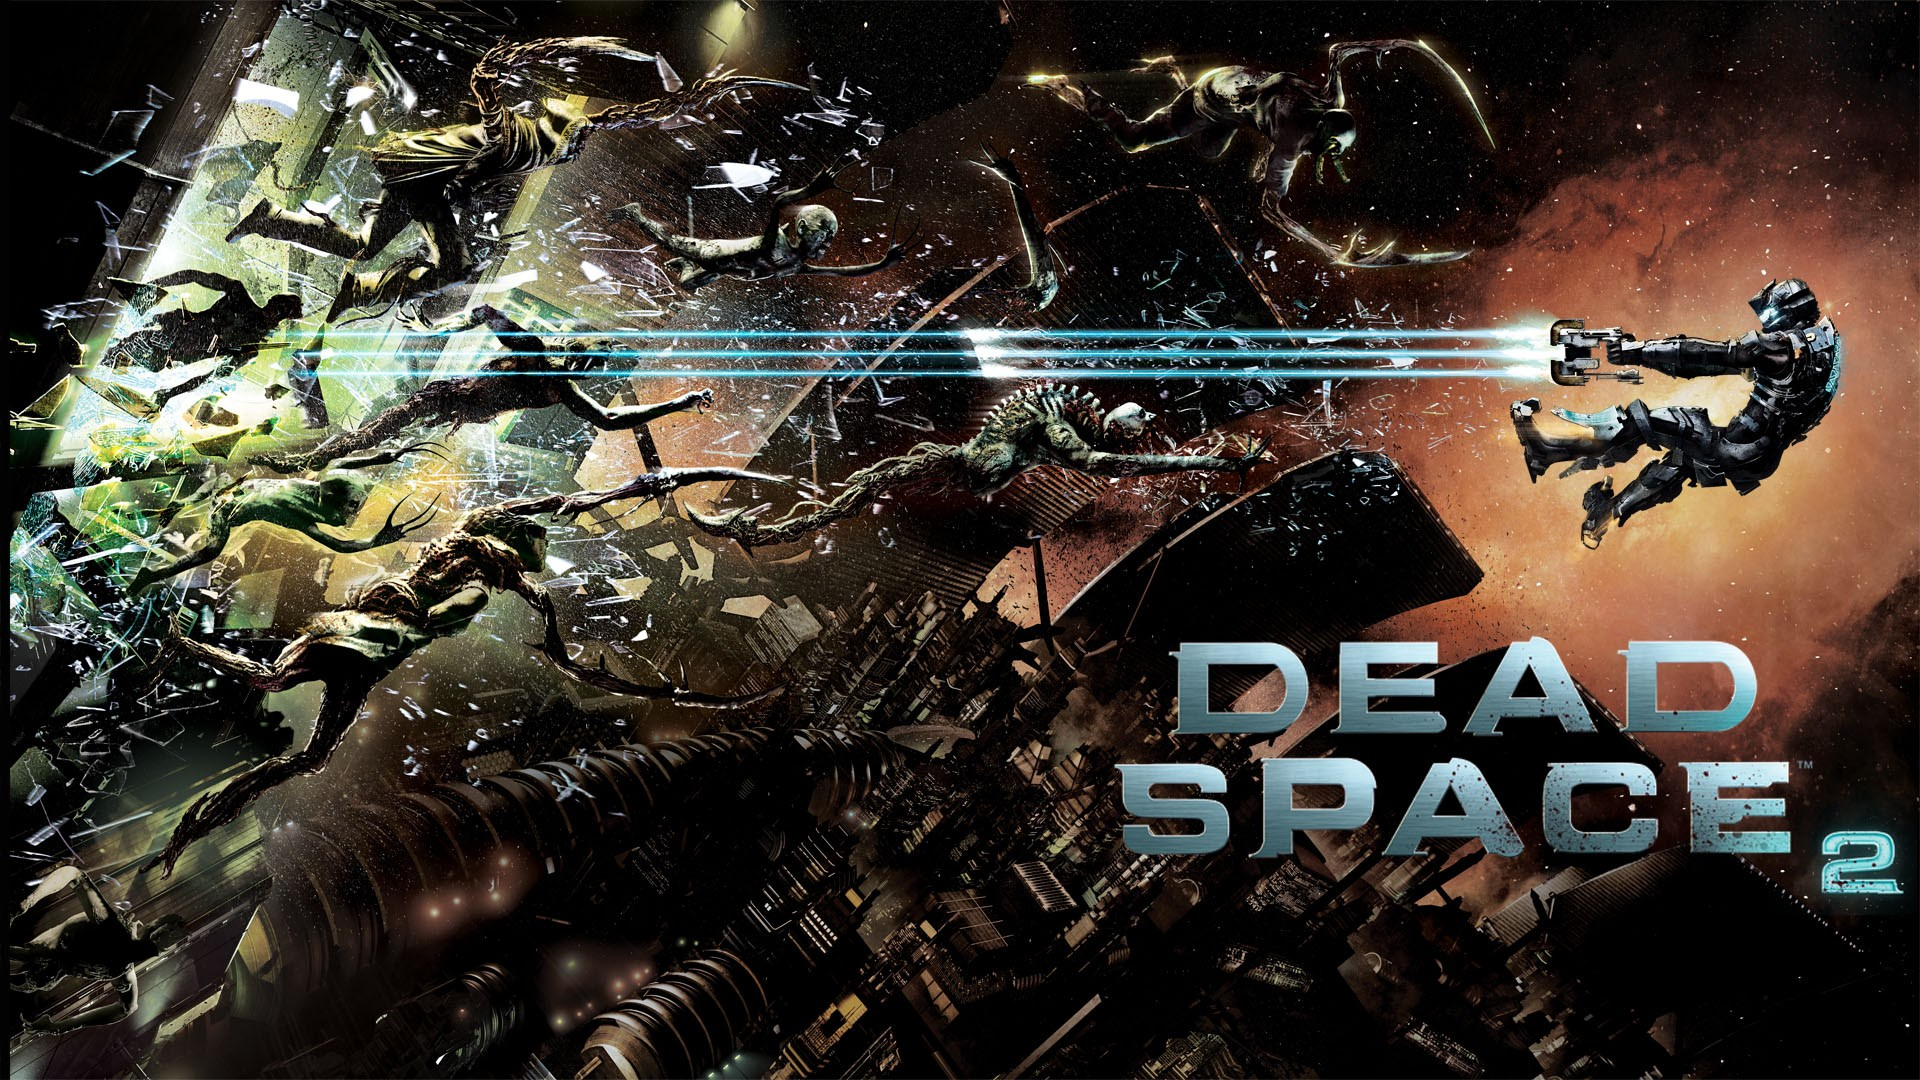 Dead space 2 game of the year edition xbox tioga downs casino license